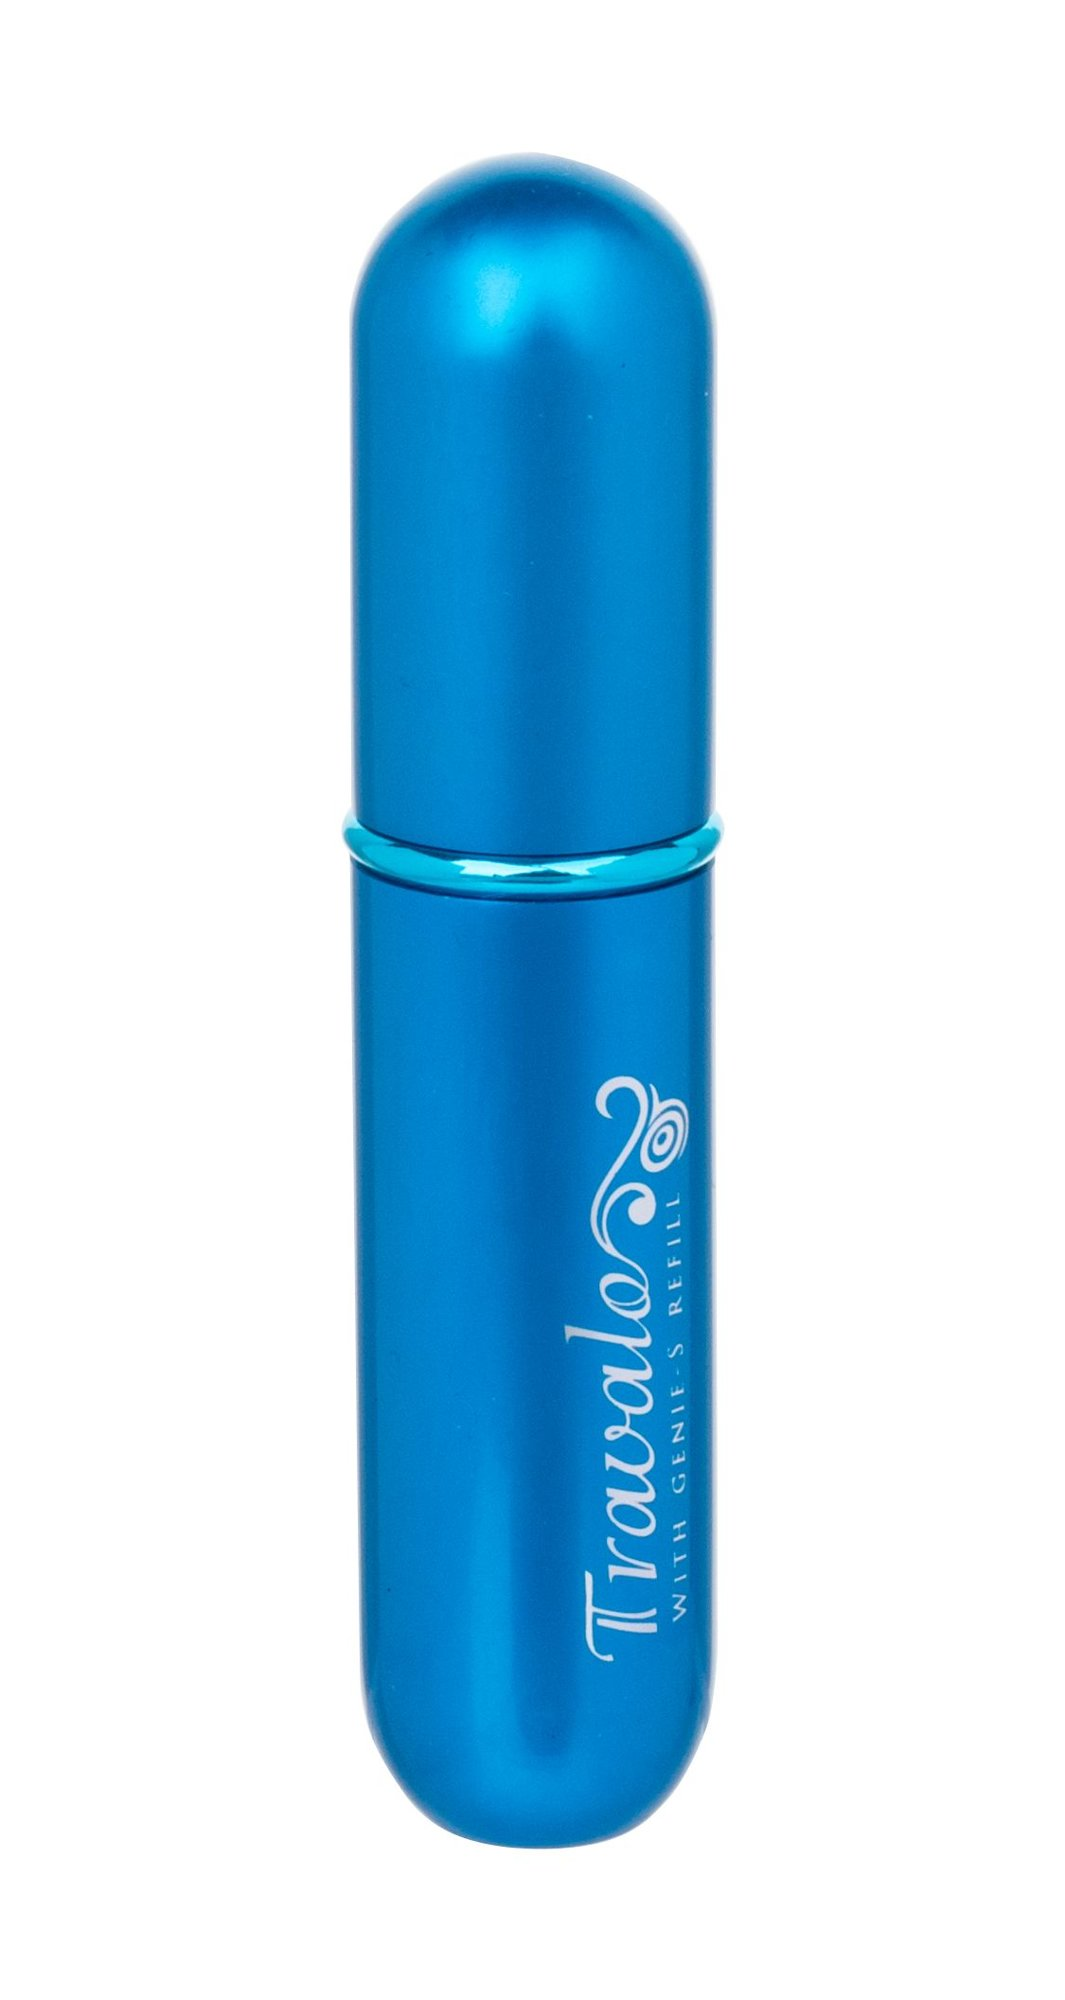 Travalo Travalo Excel refillable flacon 5ml Blue